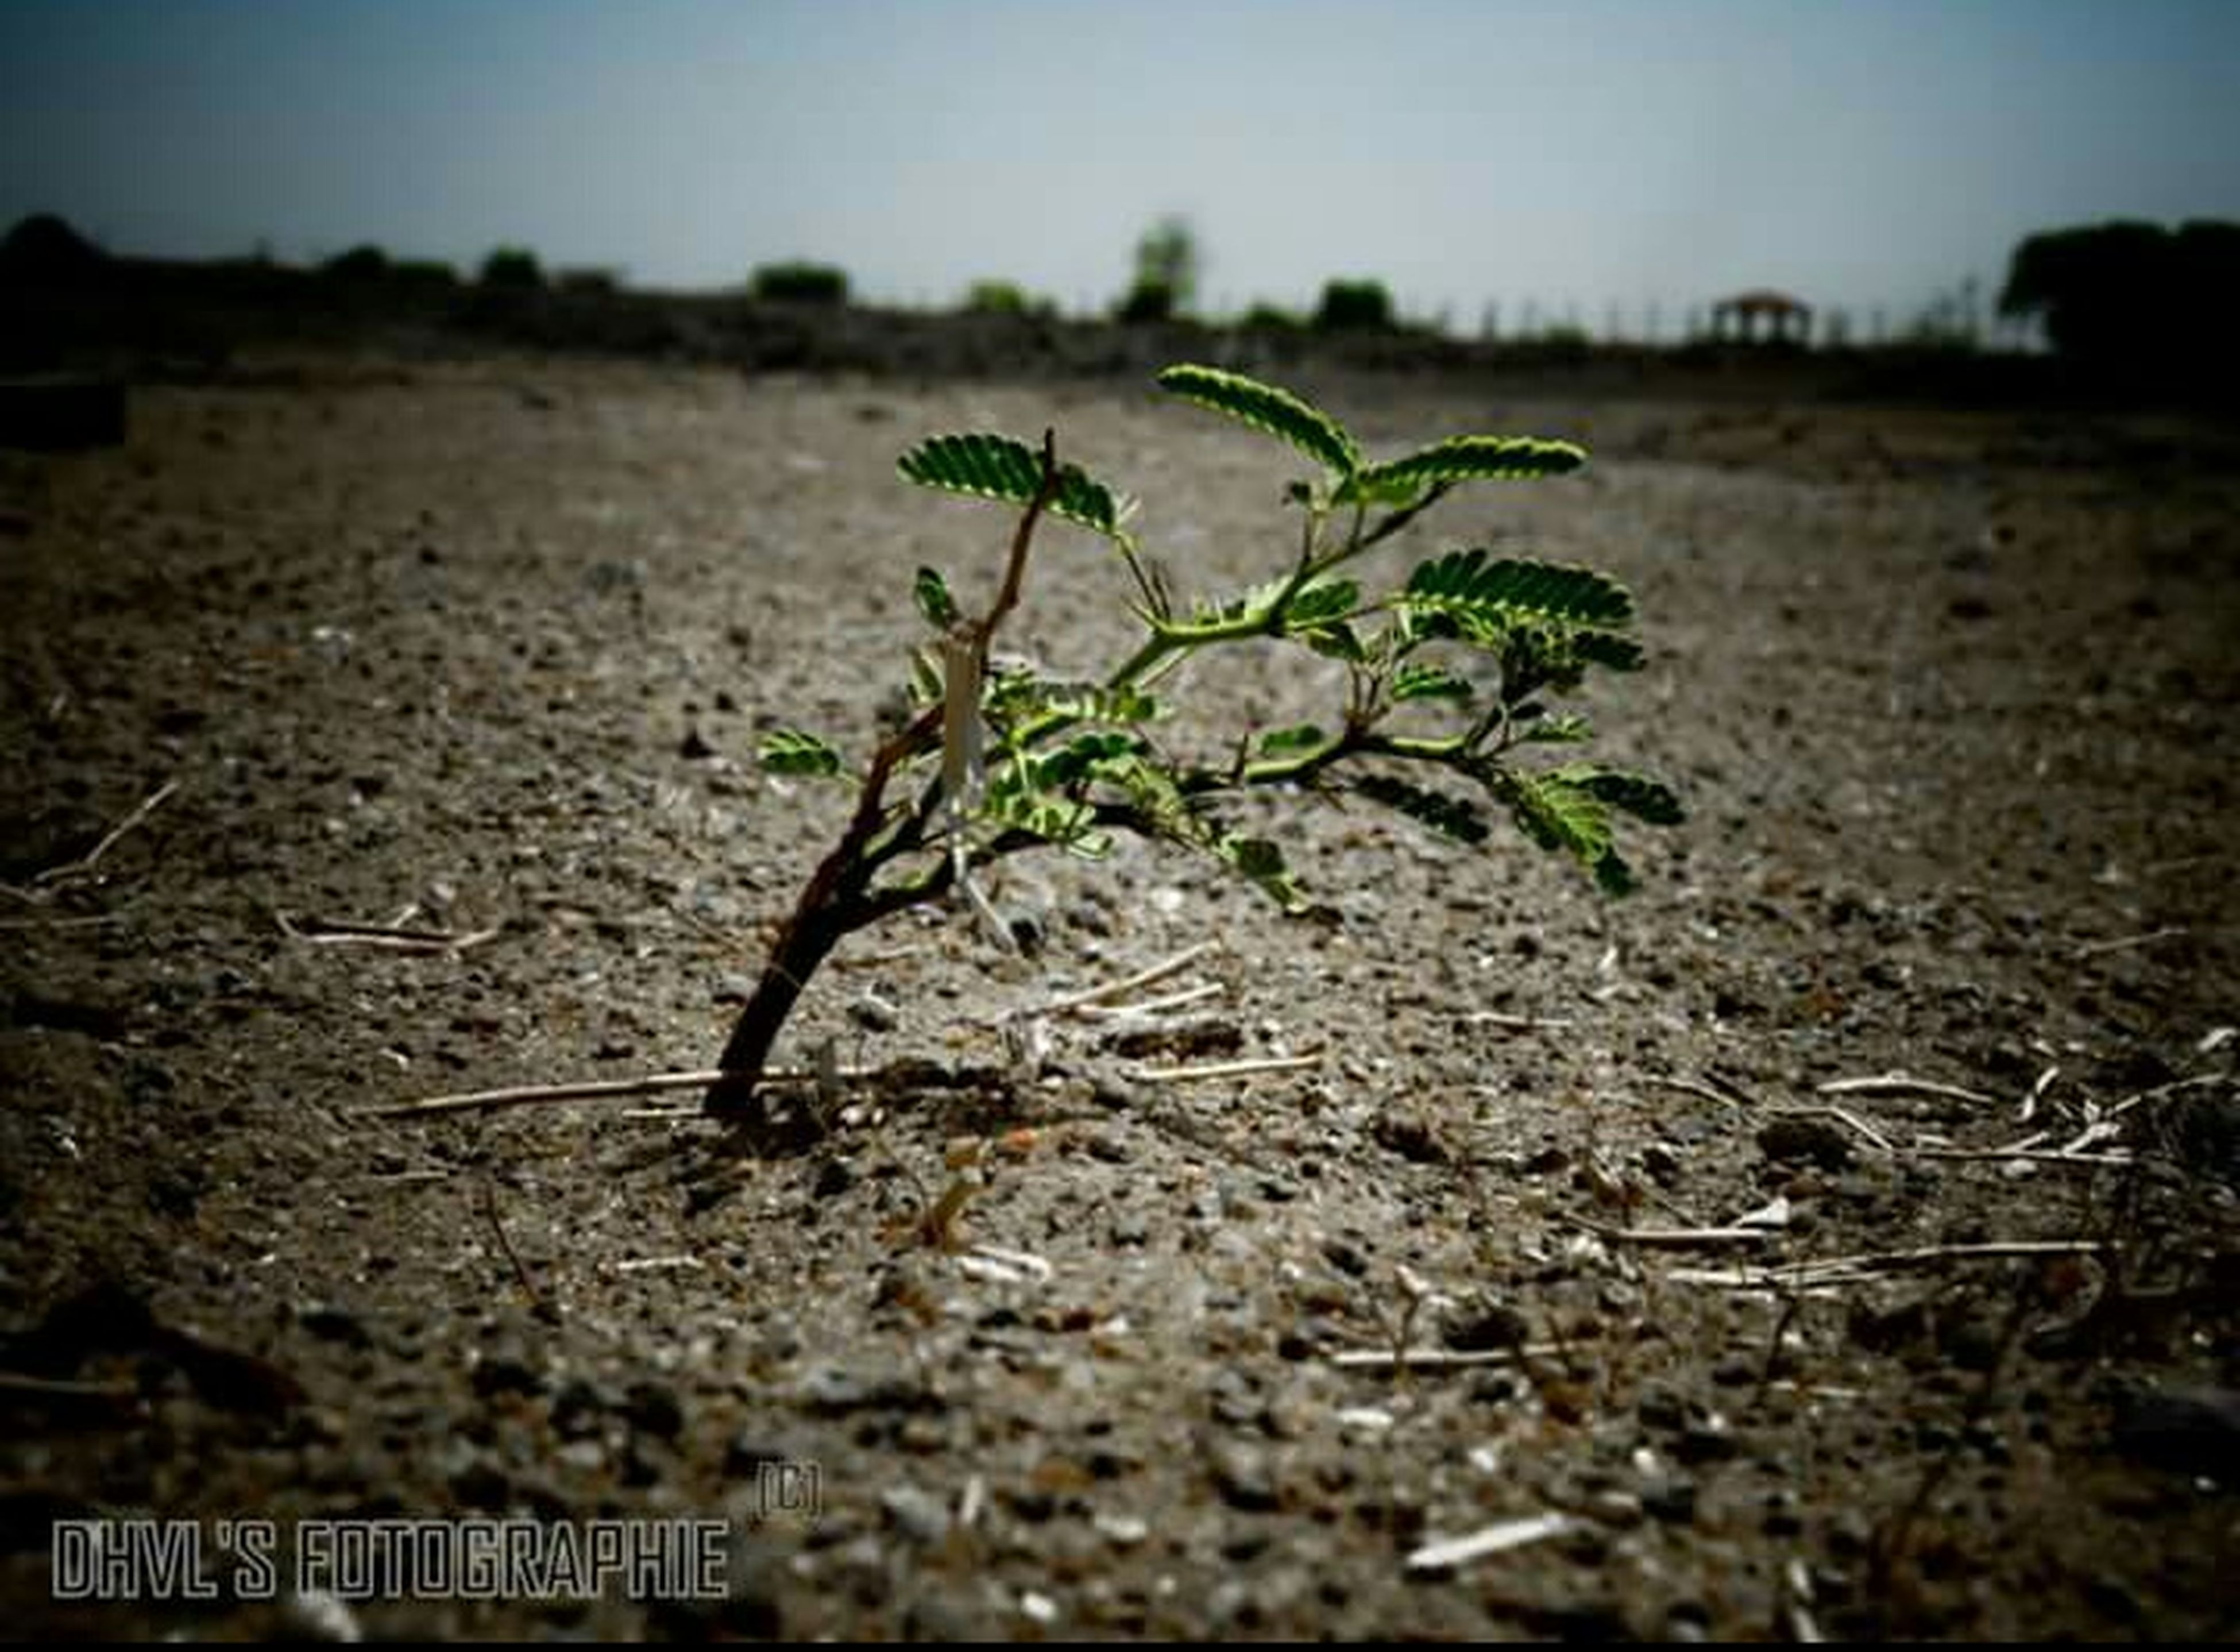 growth, plant, nature, field, selective focus, dry, focus on foreground, tranquility, surface level, landscape, close-up, leaf, sky, dirt, day, outdoors, growing, no people, sand, sunlight